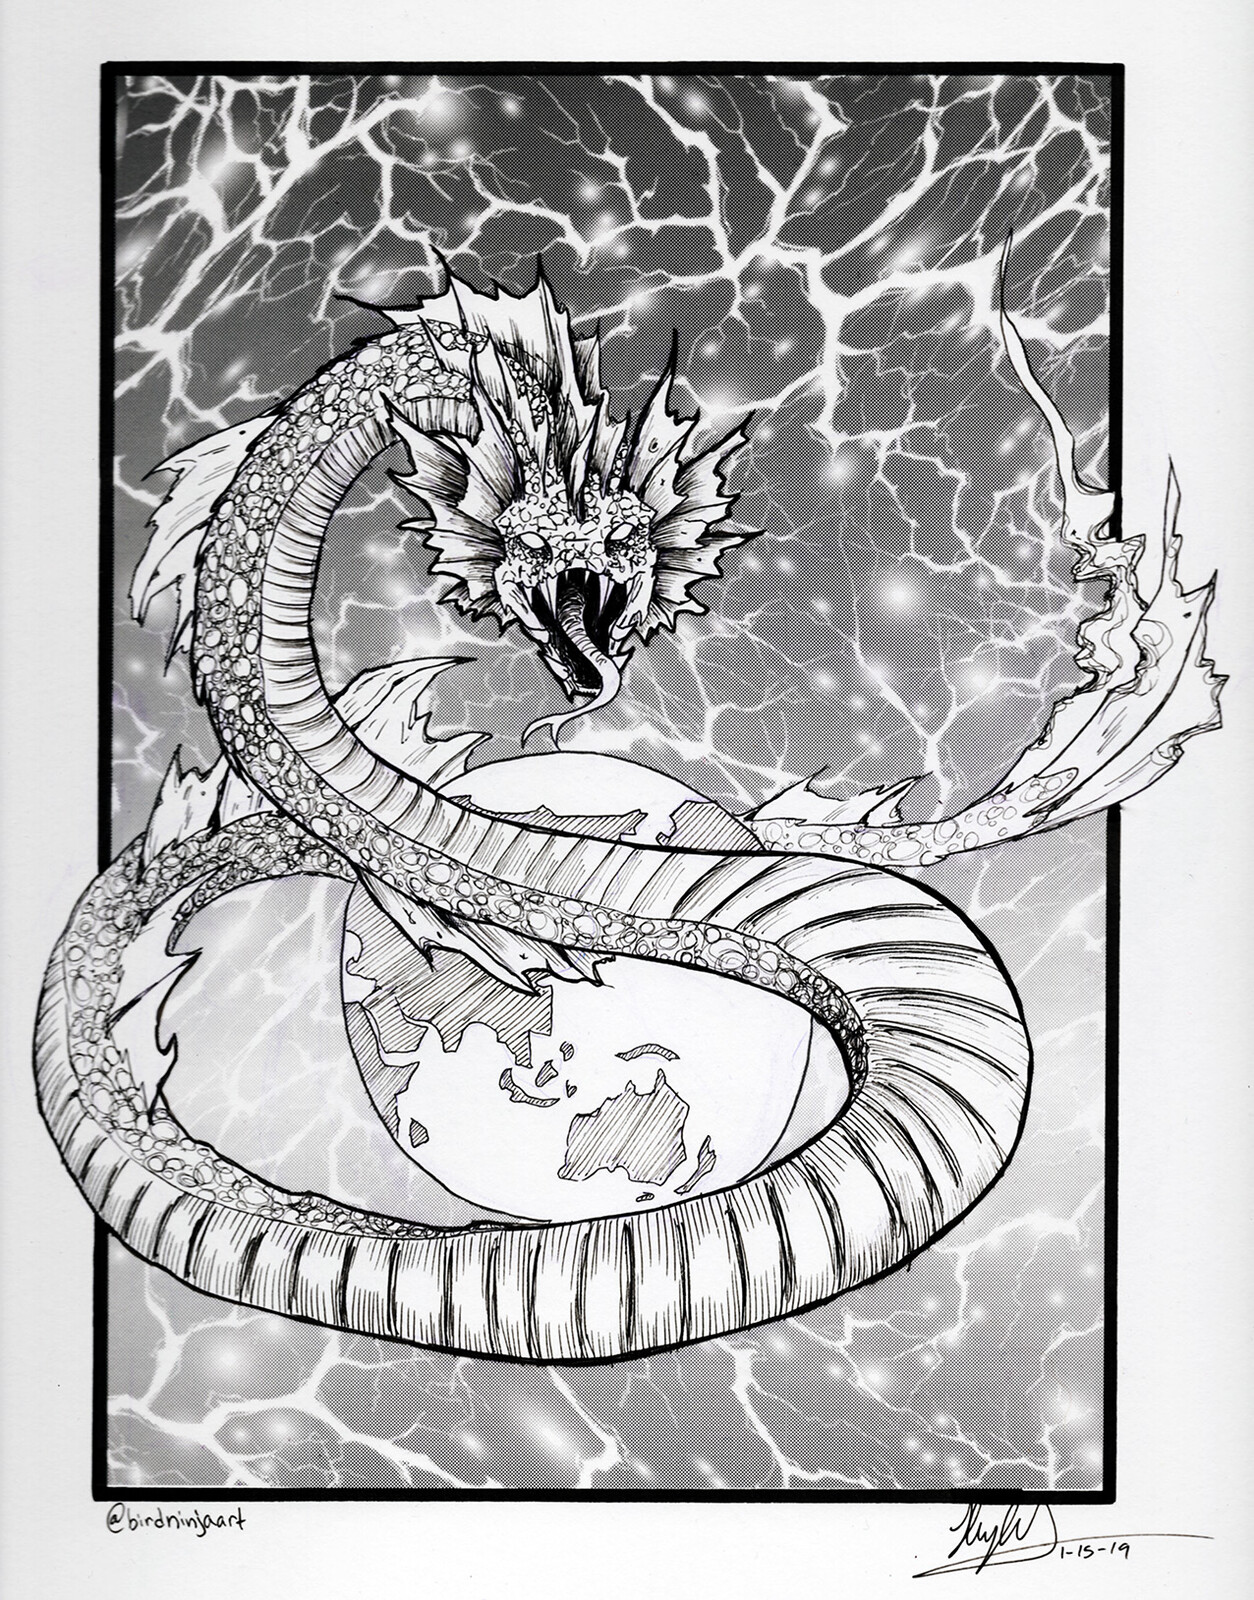 The original Jormungandr drawing for the creatuanary challenge in January. The lightning effect was done in screen tone.